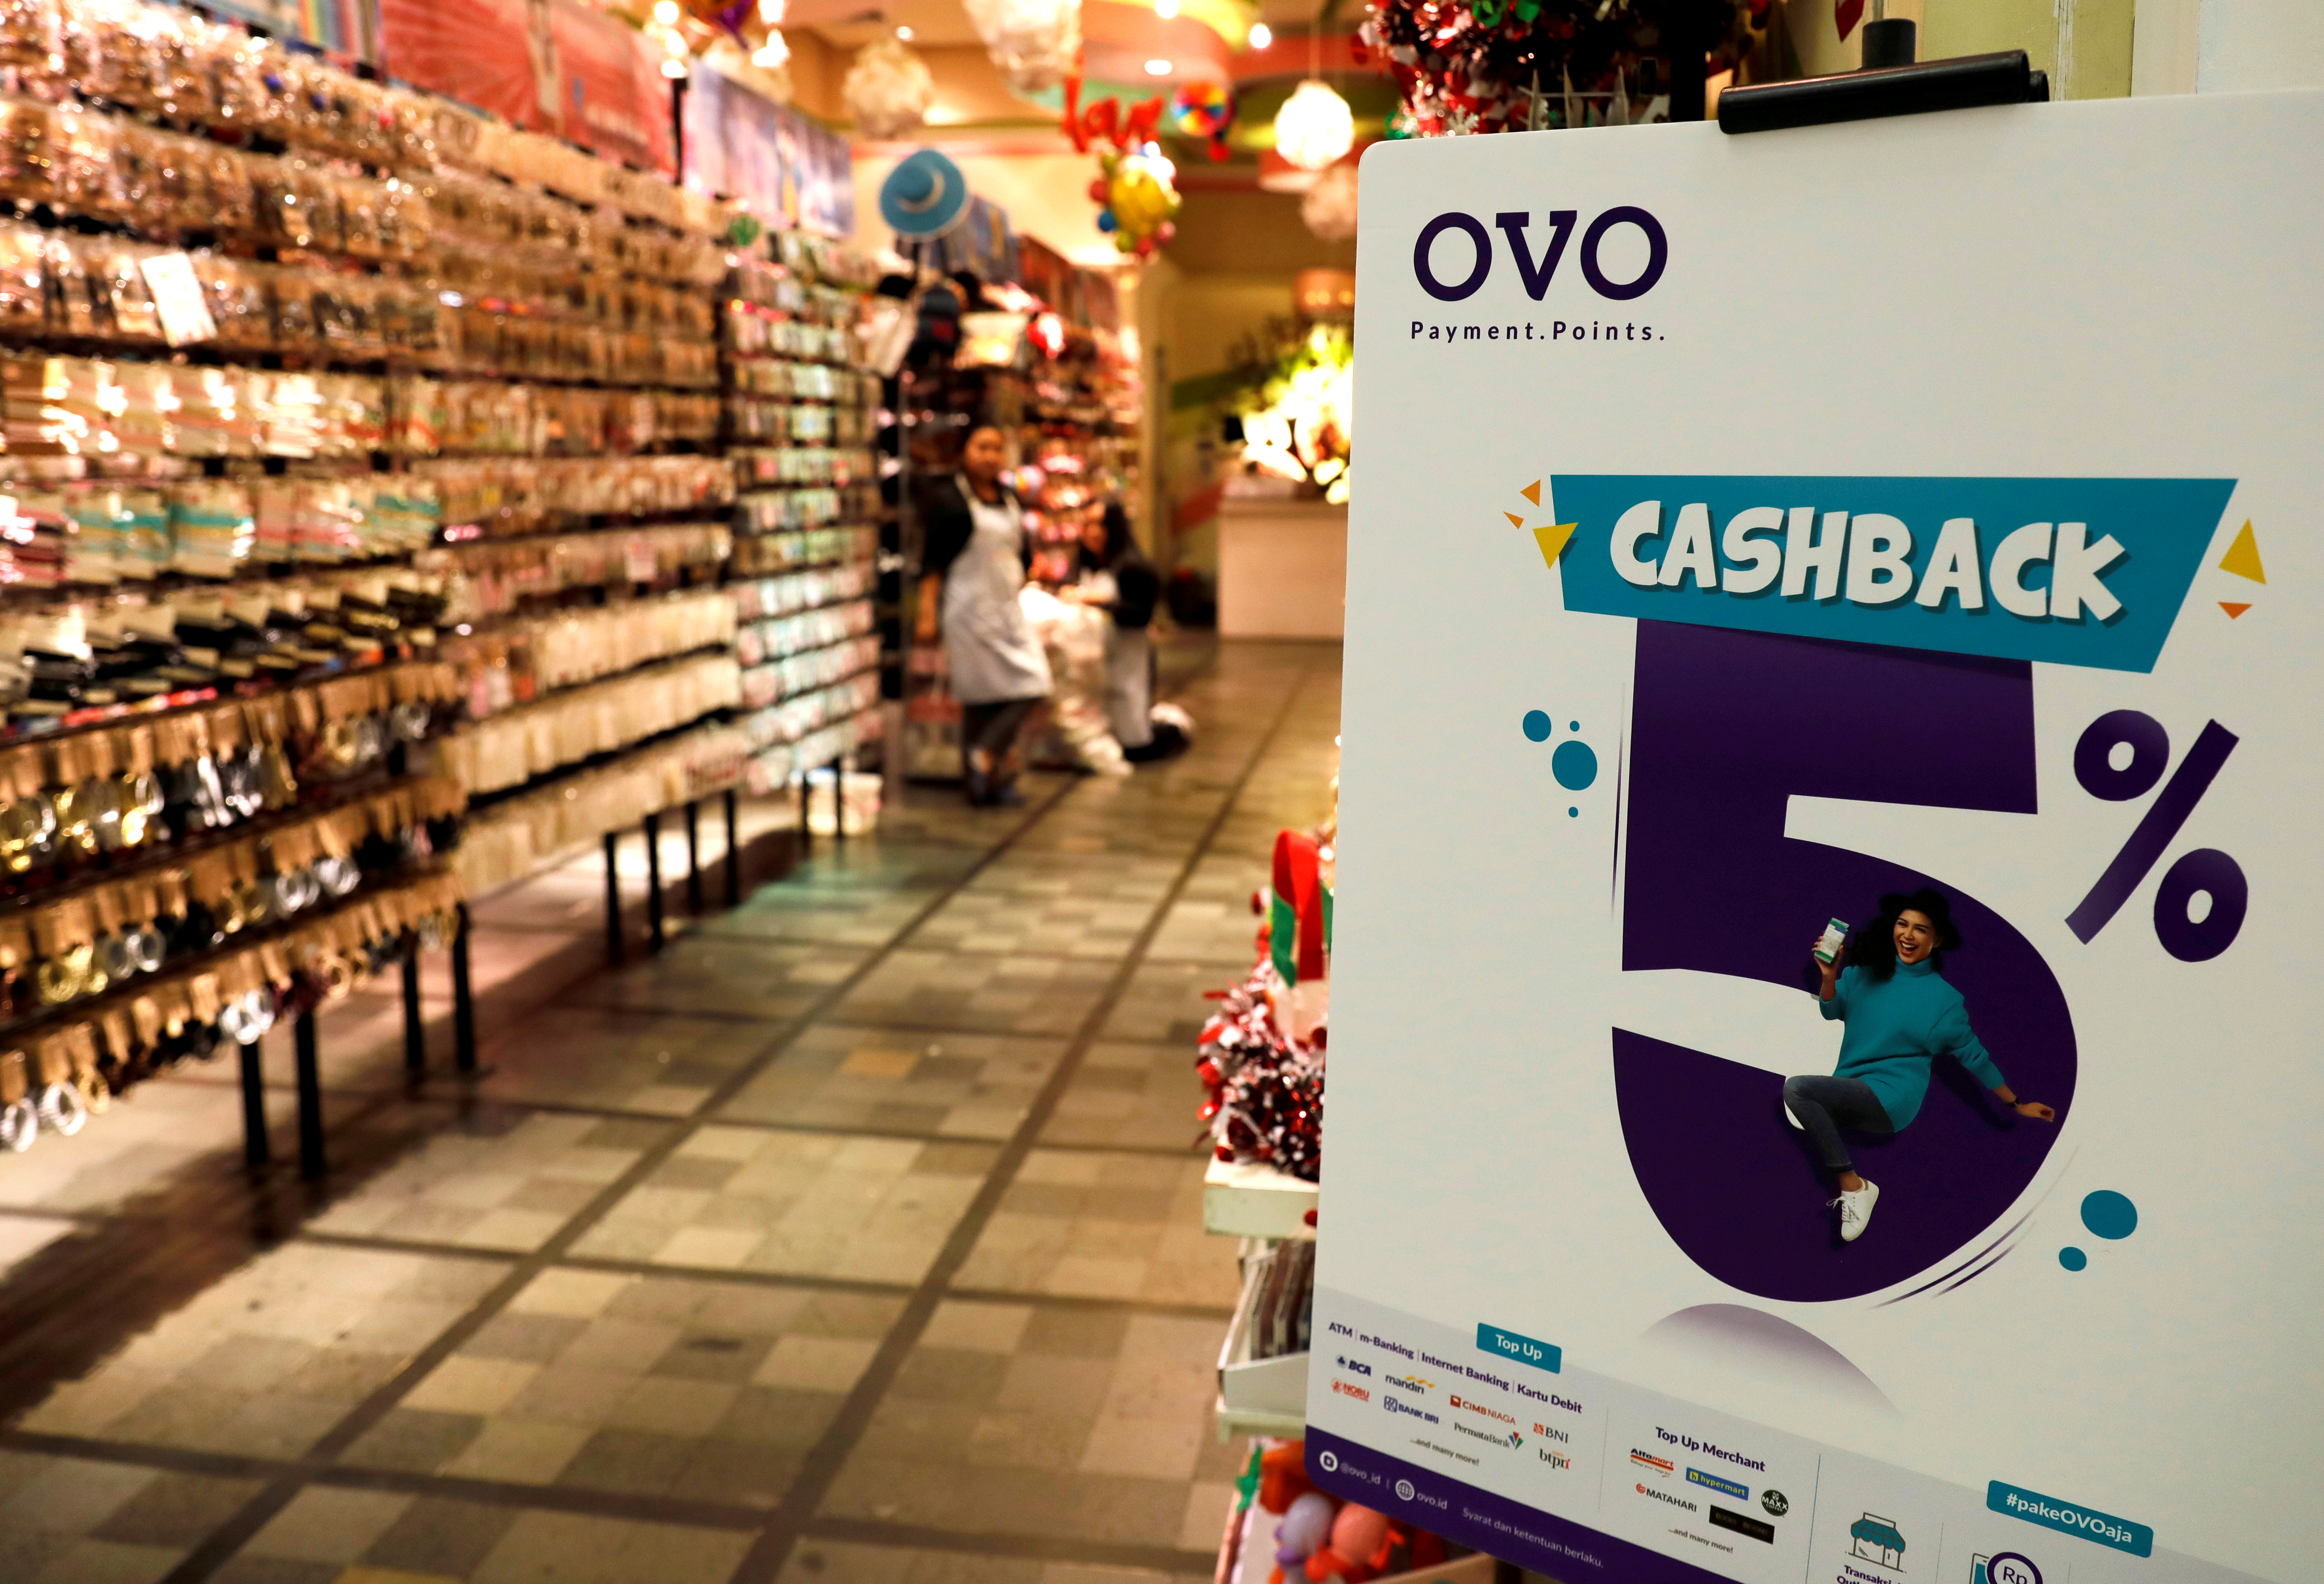 A sign of OVO payment is seen at a mall in Jakarta, Indonesia, November 8, 2018. Picture taken November 8, 2018. REUTERS/Beawiharta/File Photo